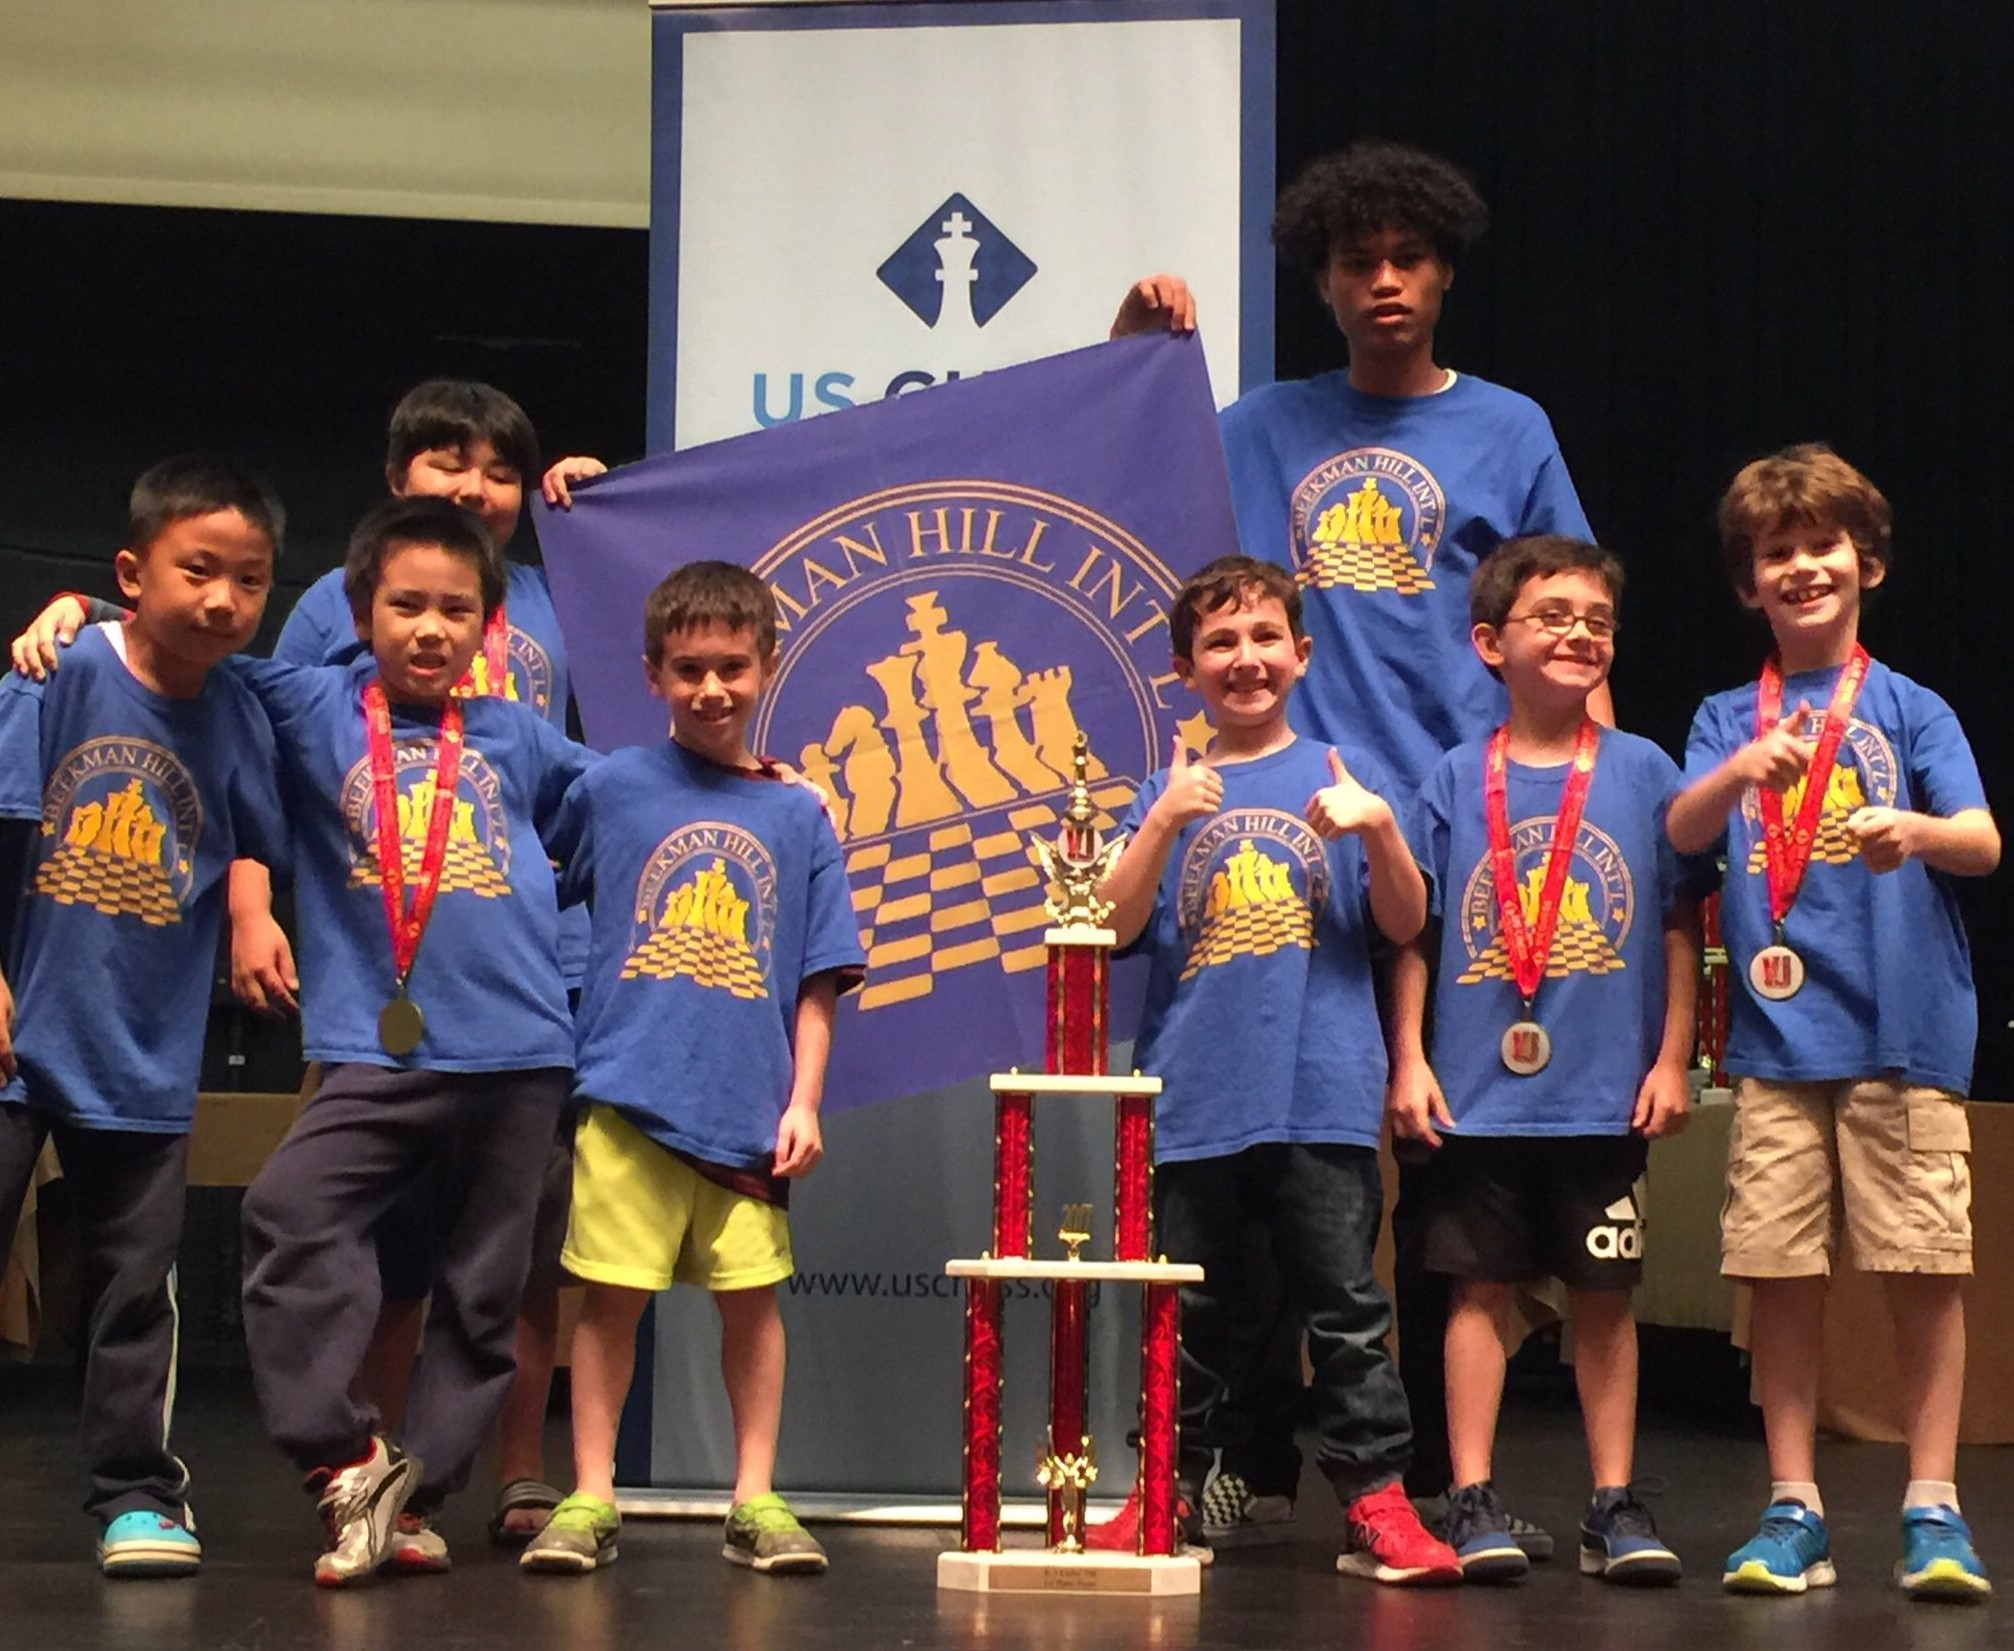 PS 59 = K - 3 U 700 National Champions!